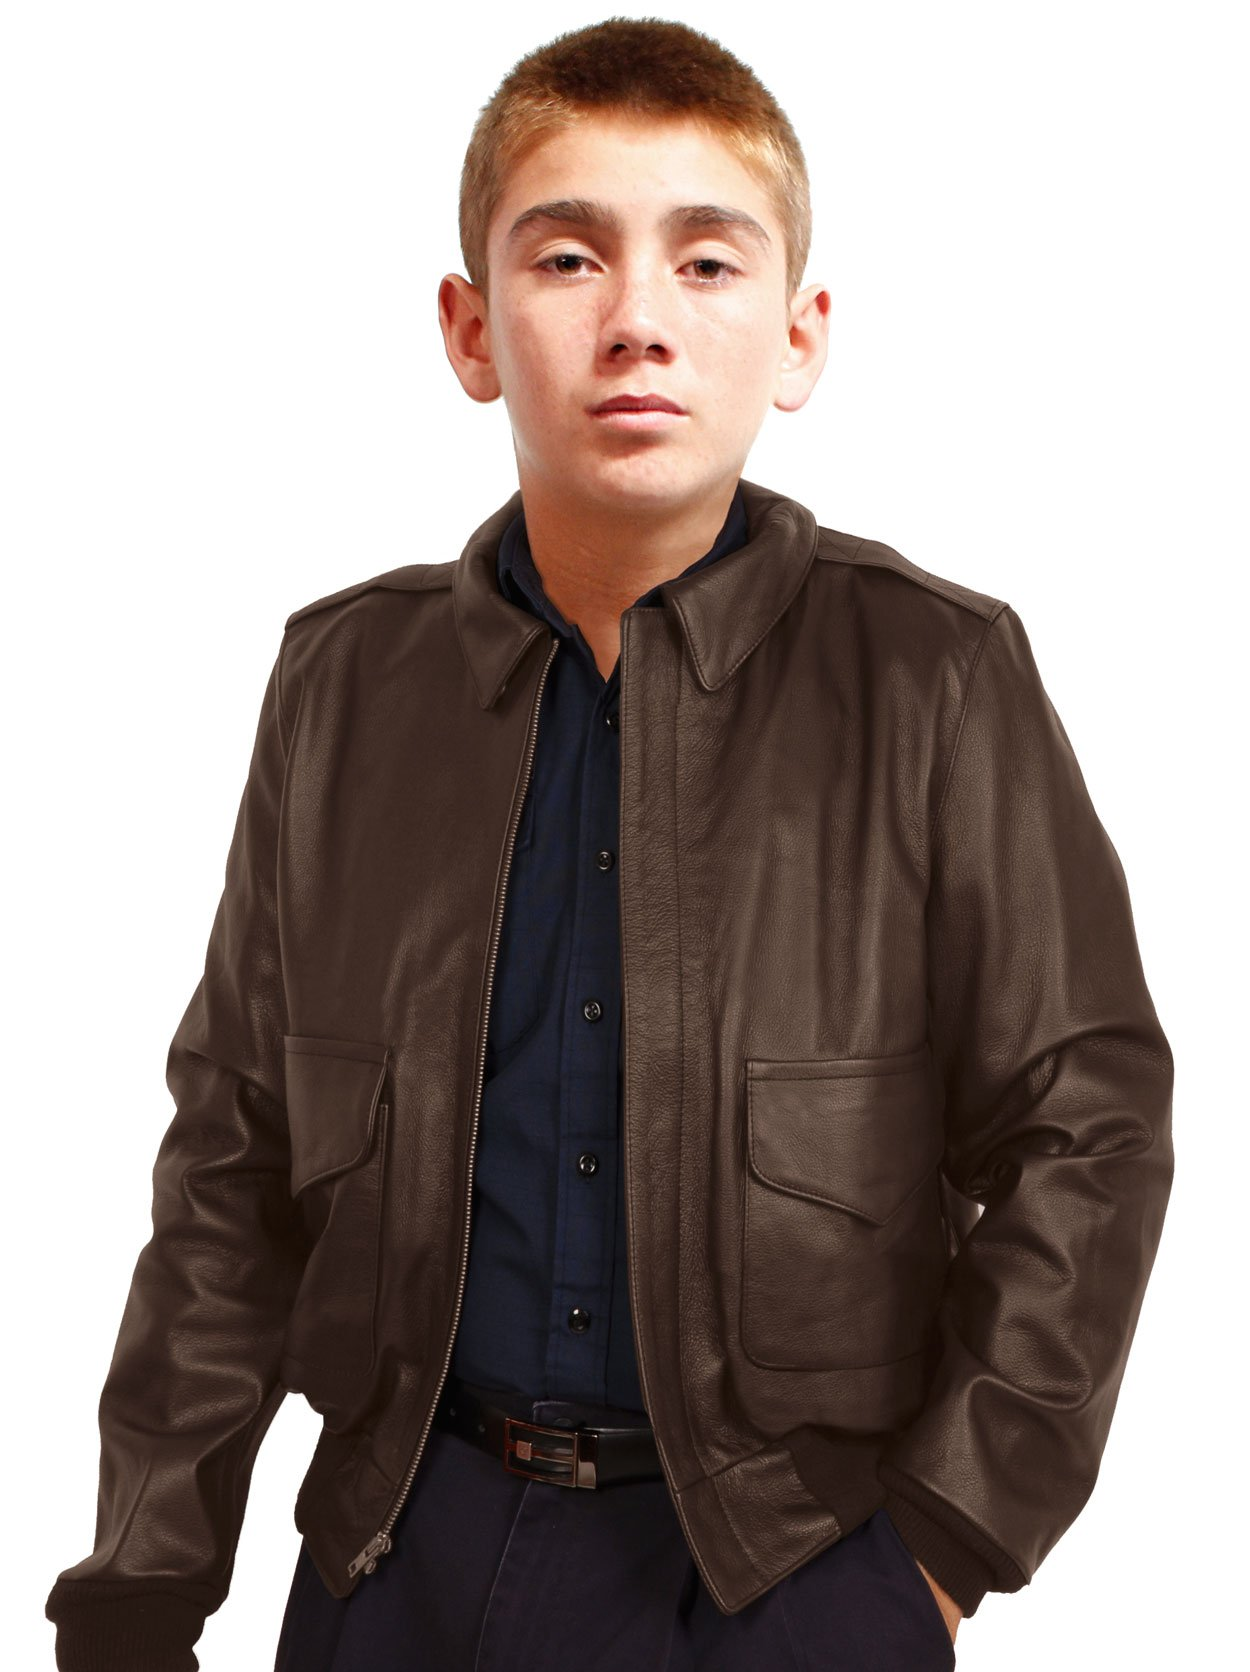 Kids A2 Air Force Leather Bomber Jacket